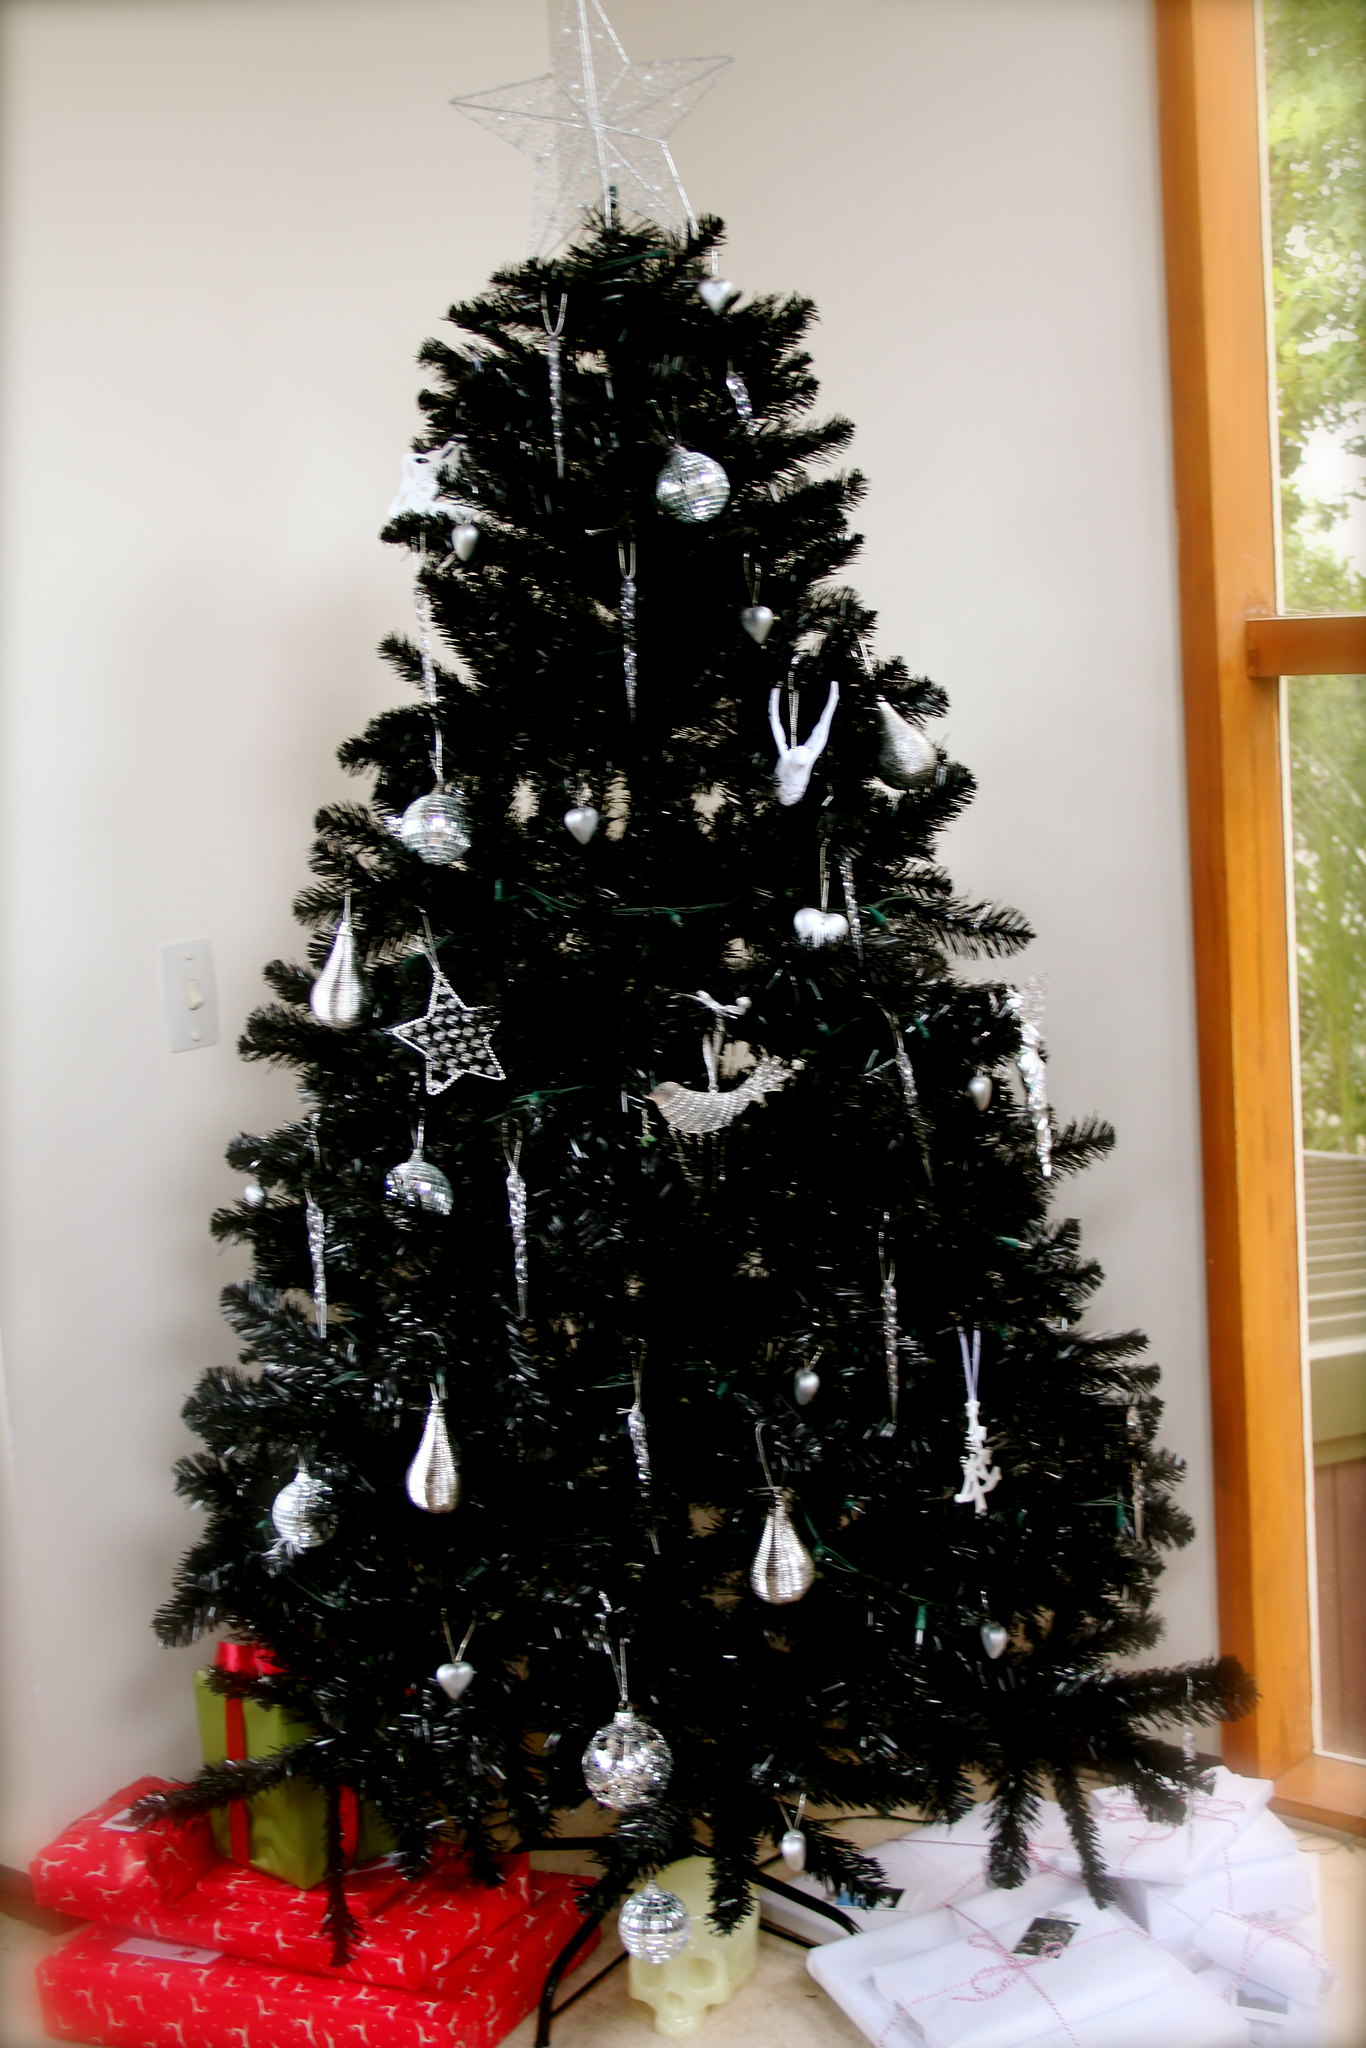 black tree with ornaments